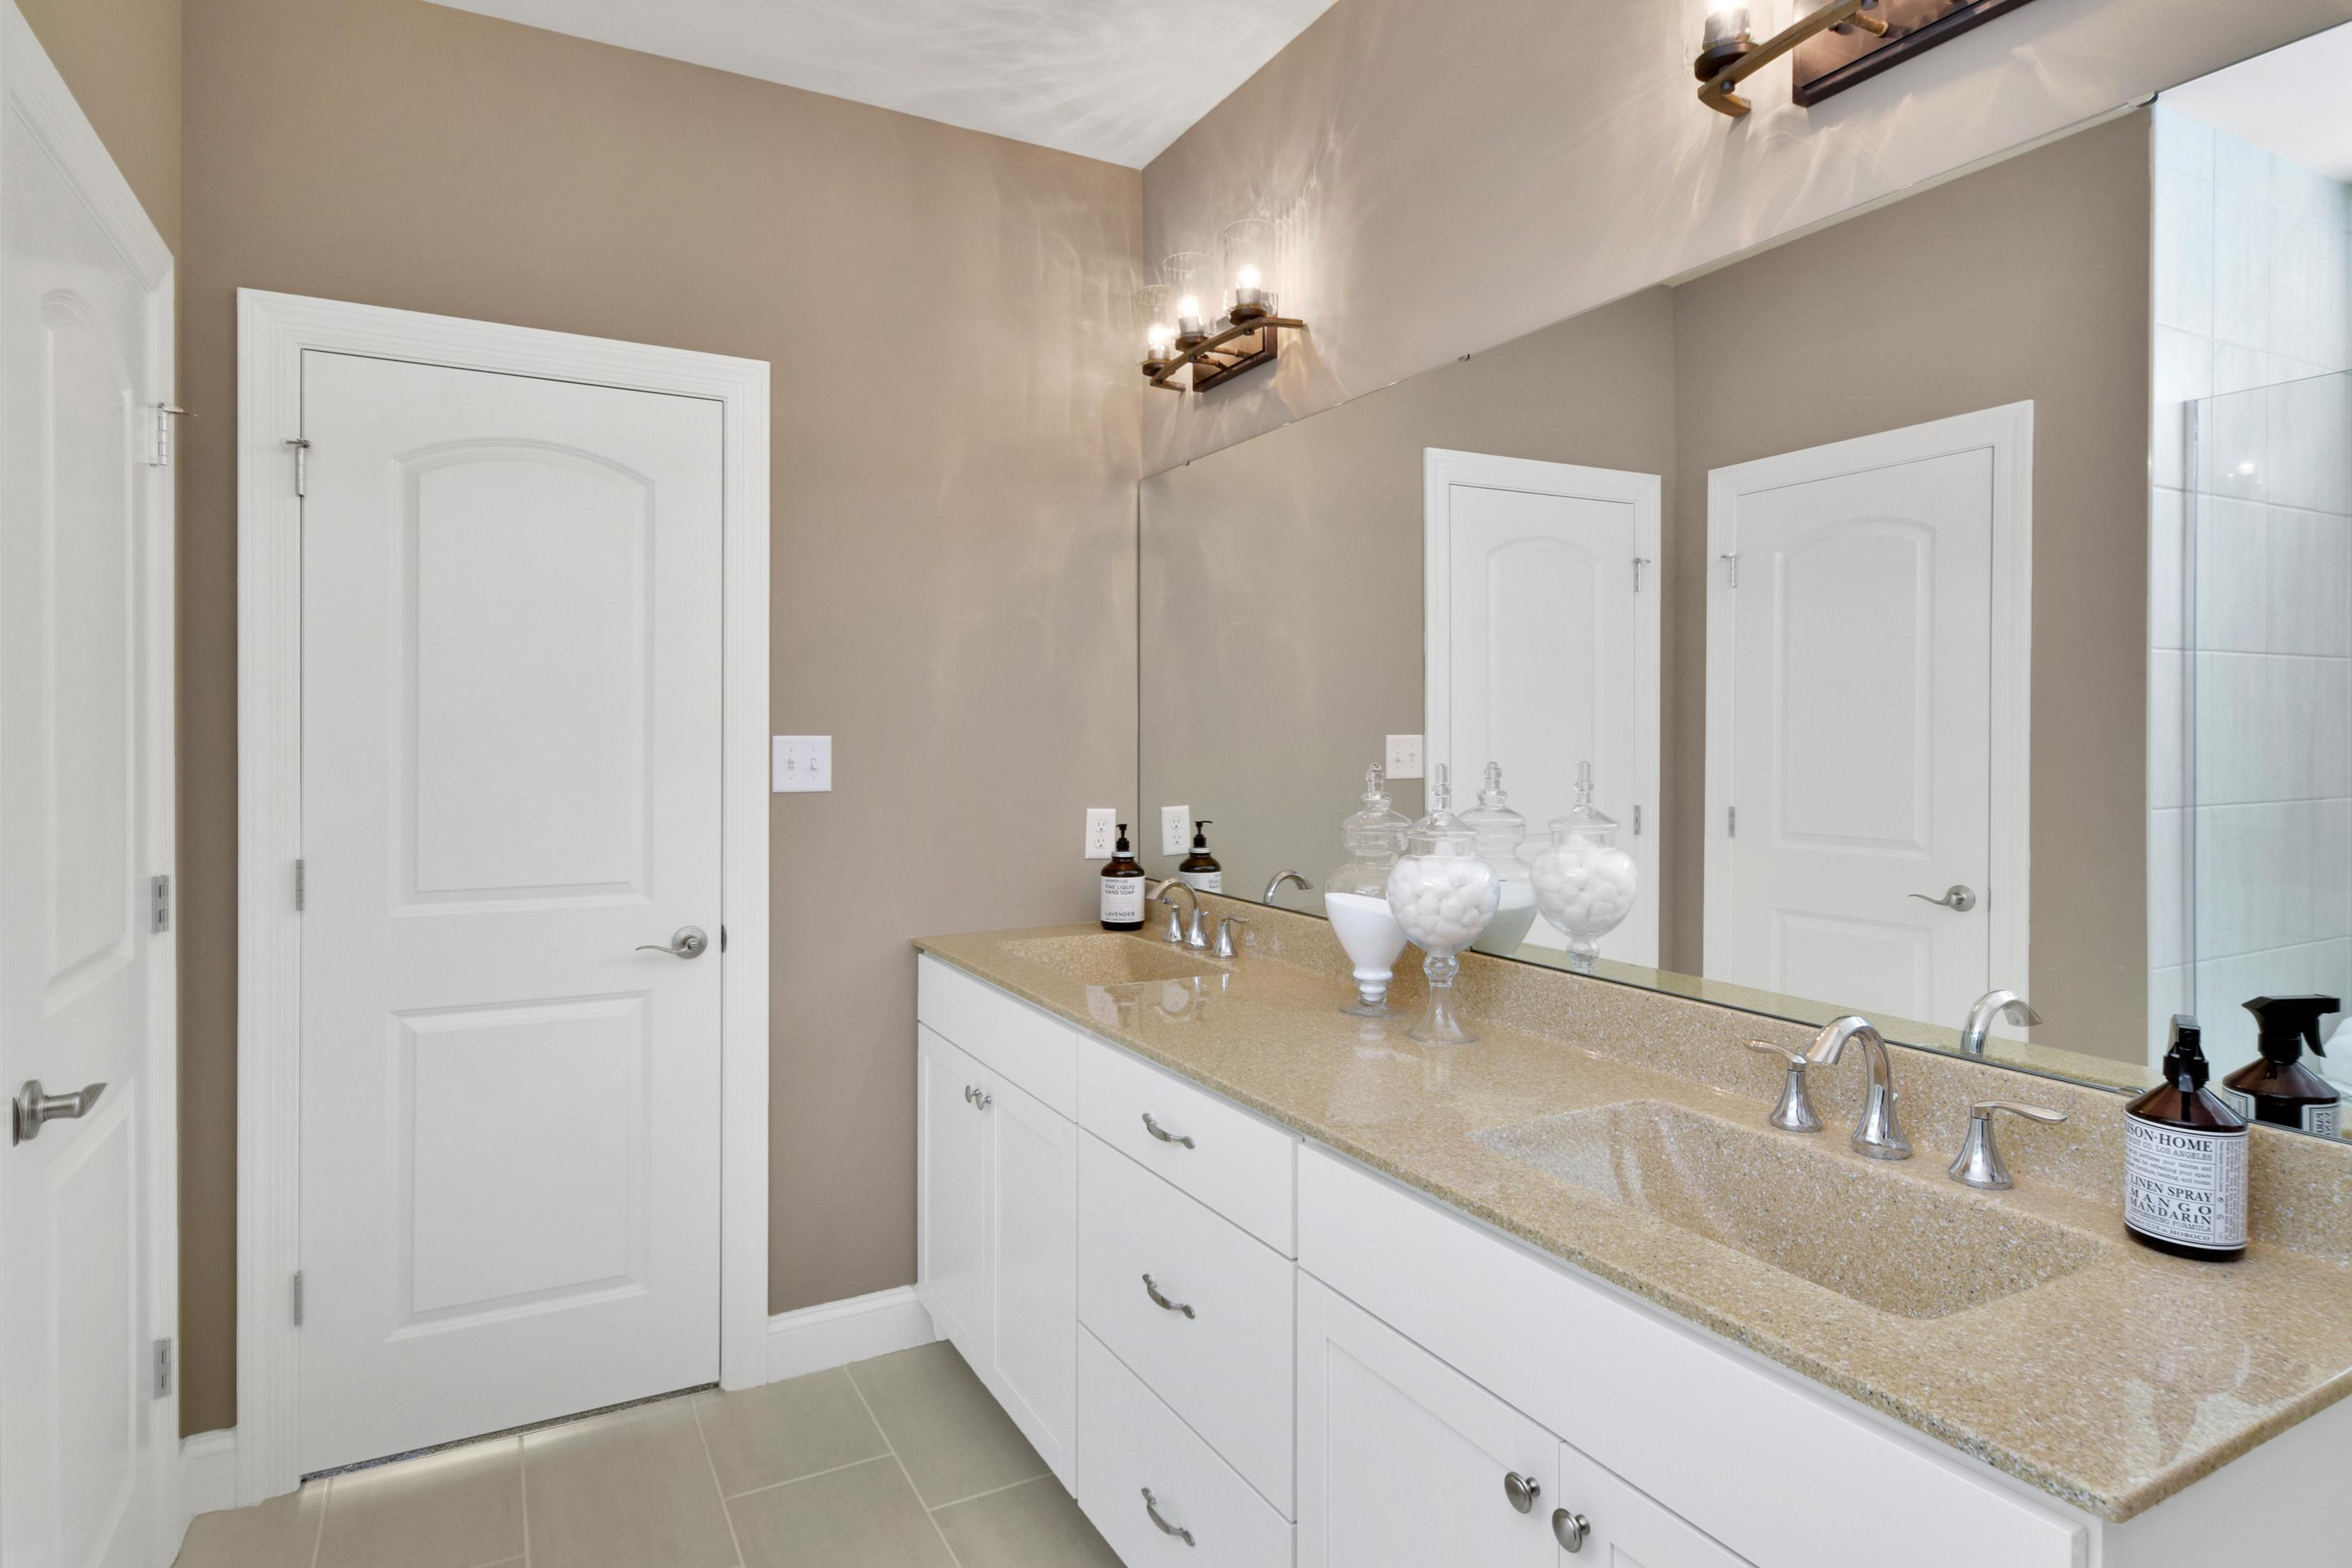 Bathroom featured in The Columbia By The Kemp Homes Company  in St. Louis, MO